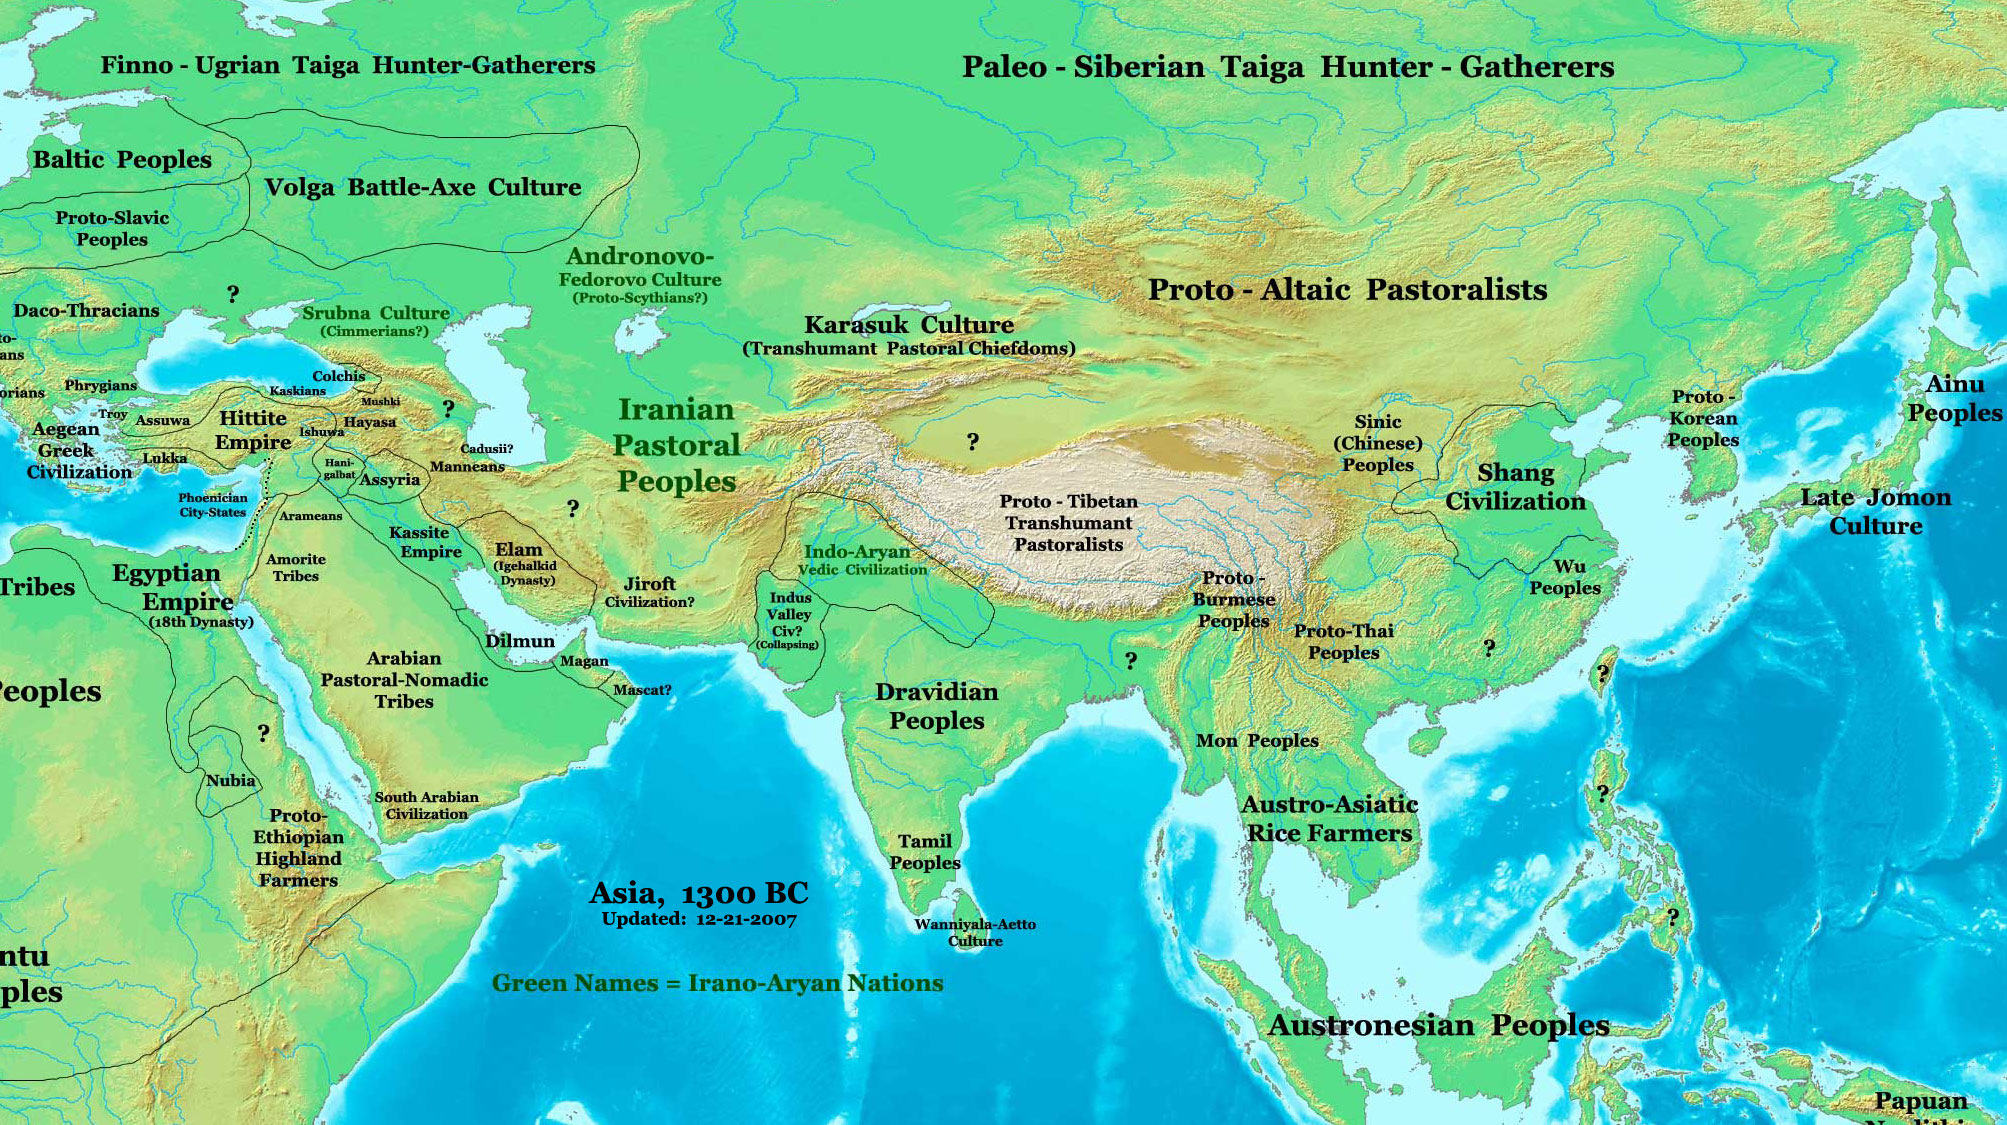 the history of the eastern hemisphere asia Eastern hemisphere definition is - the half of the earth east of the atlantic ocean including europe, asia, australia, and africa the half of the earth east of the atlantic ocean including europe, asia, australia, and africa.